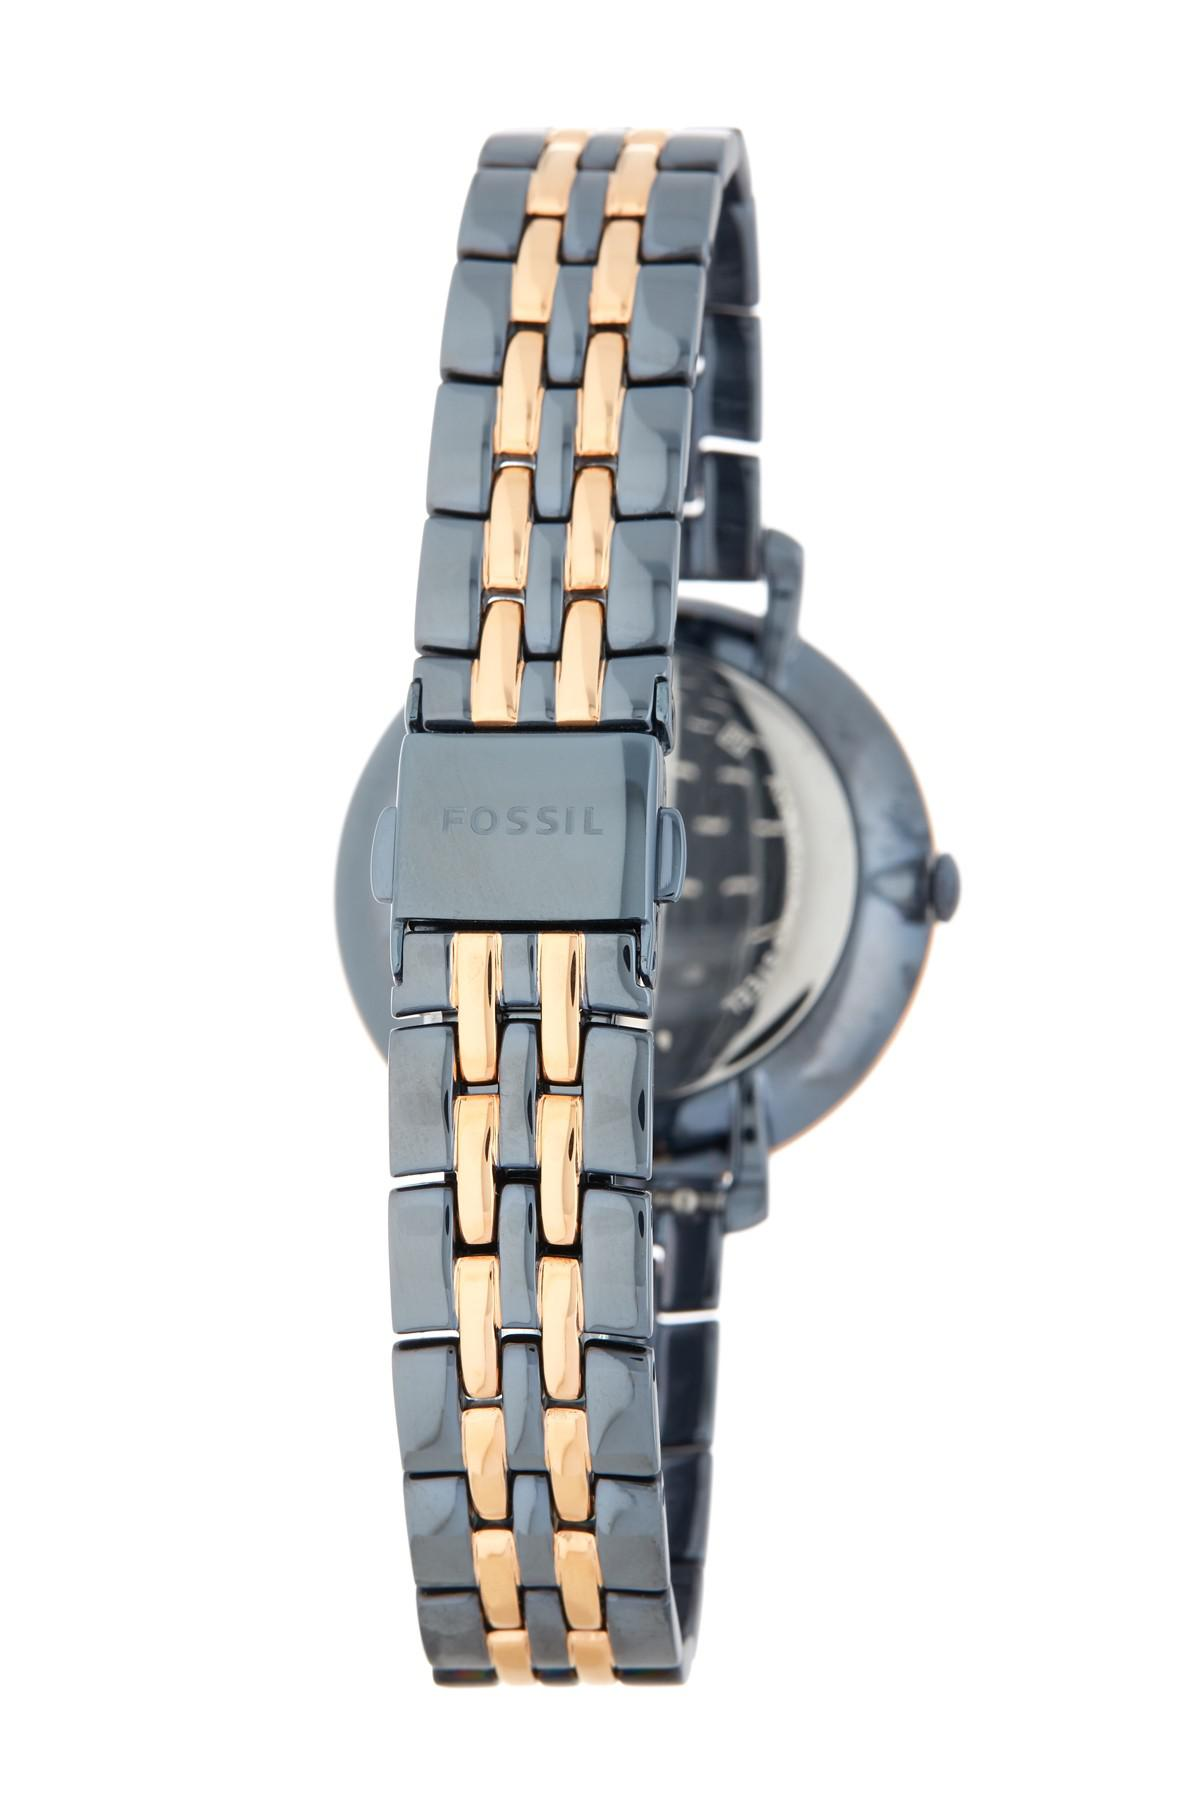 Fossil Watch Jacqueline Beige Stainless Steel Case Leather Strap Three Hand Graystone Es 4096 Multicolor Womens Bracelet 34mm Lyst View Fullscreen